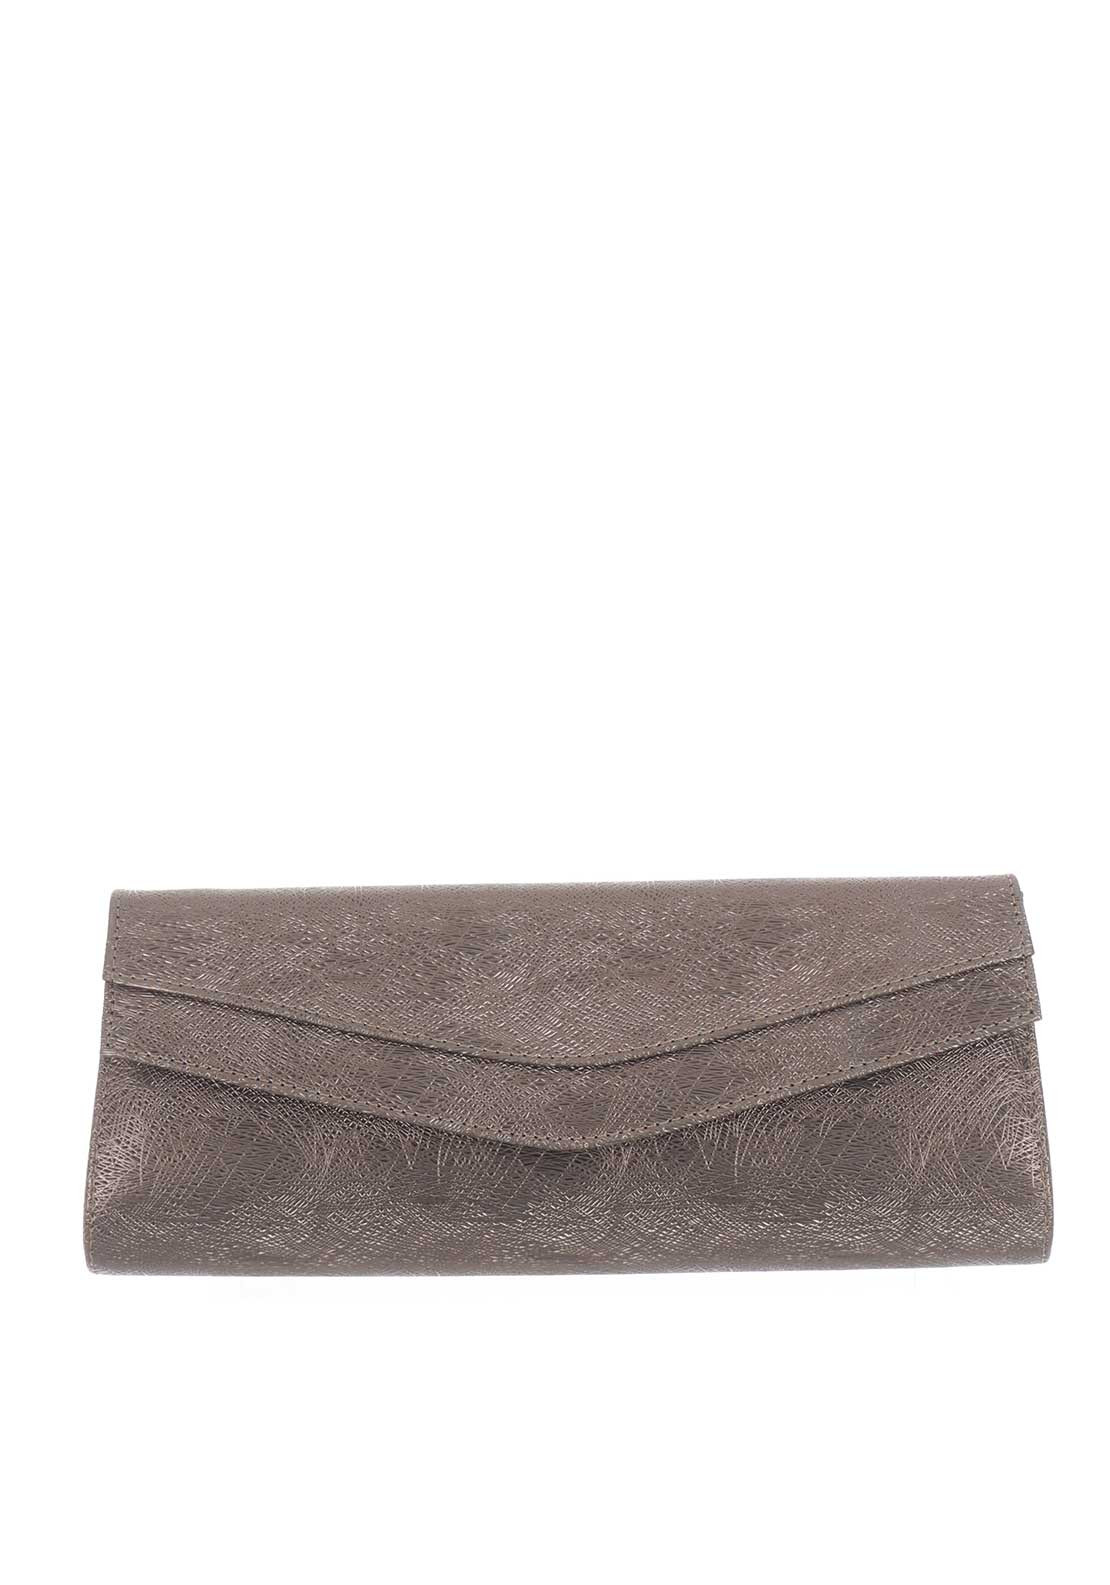 Ana Roman Textured Clutch Bag, Bronze